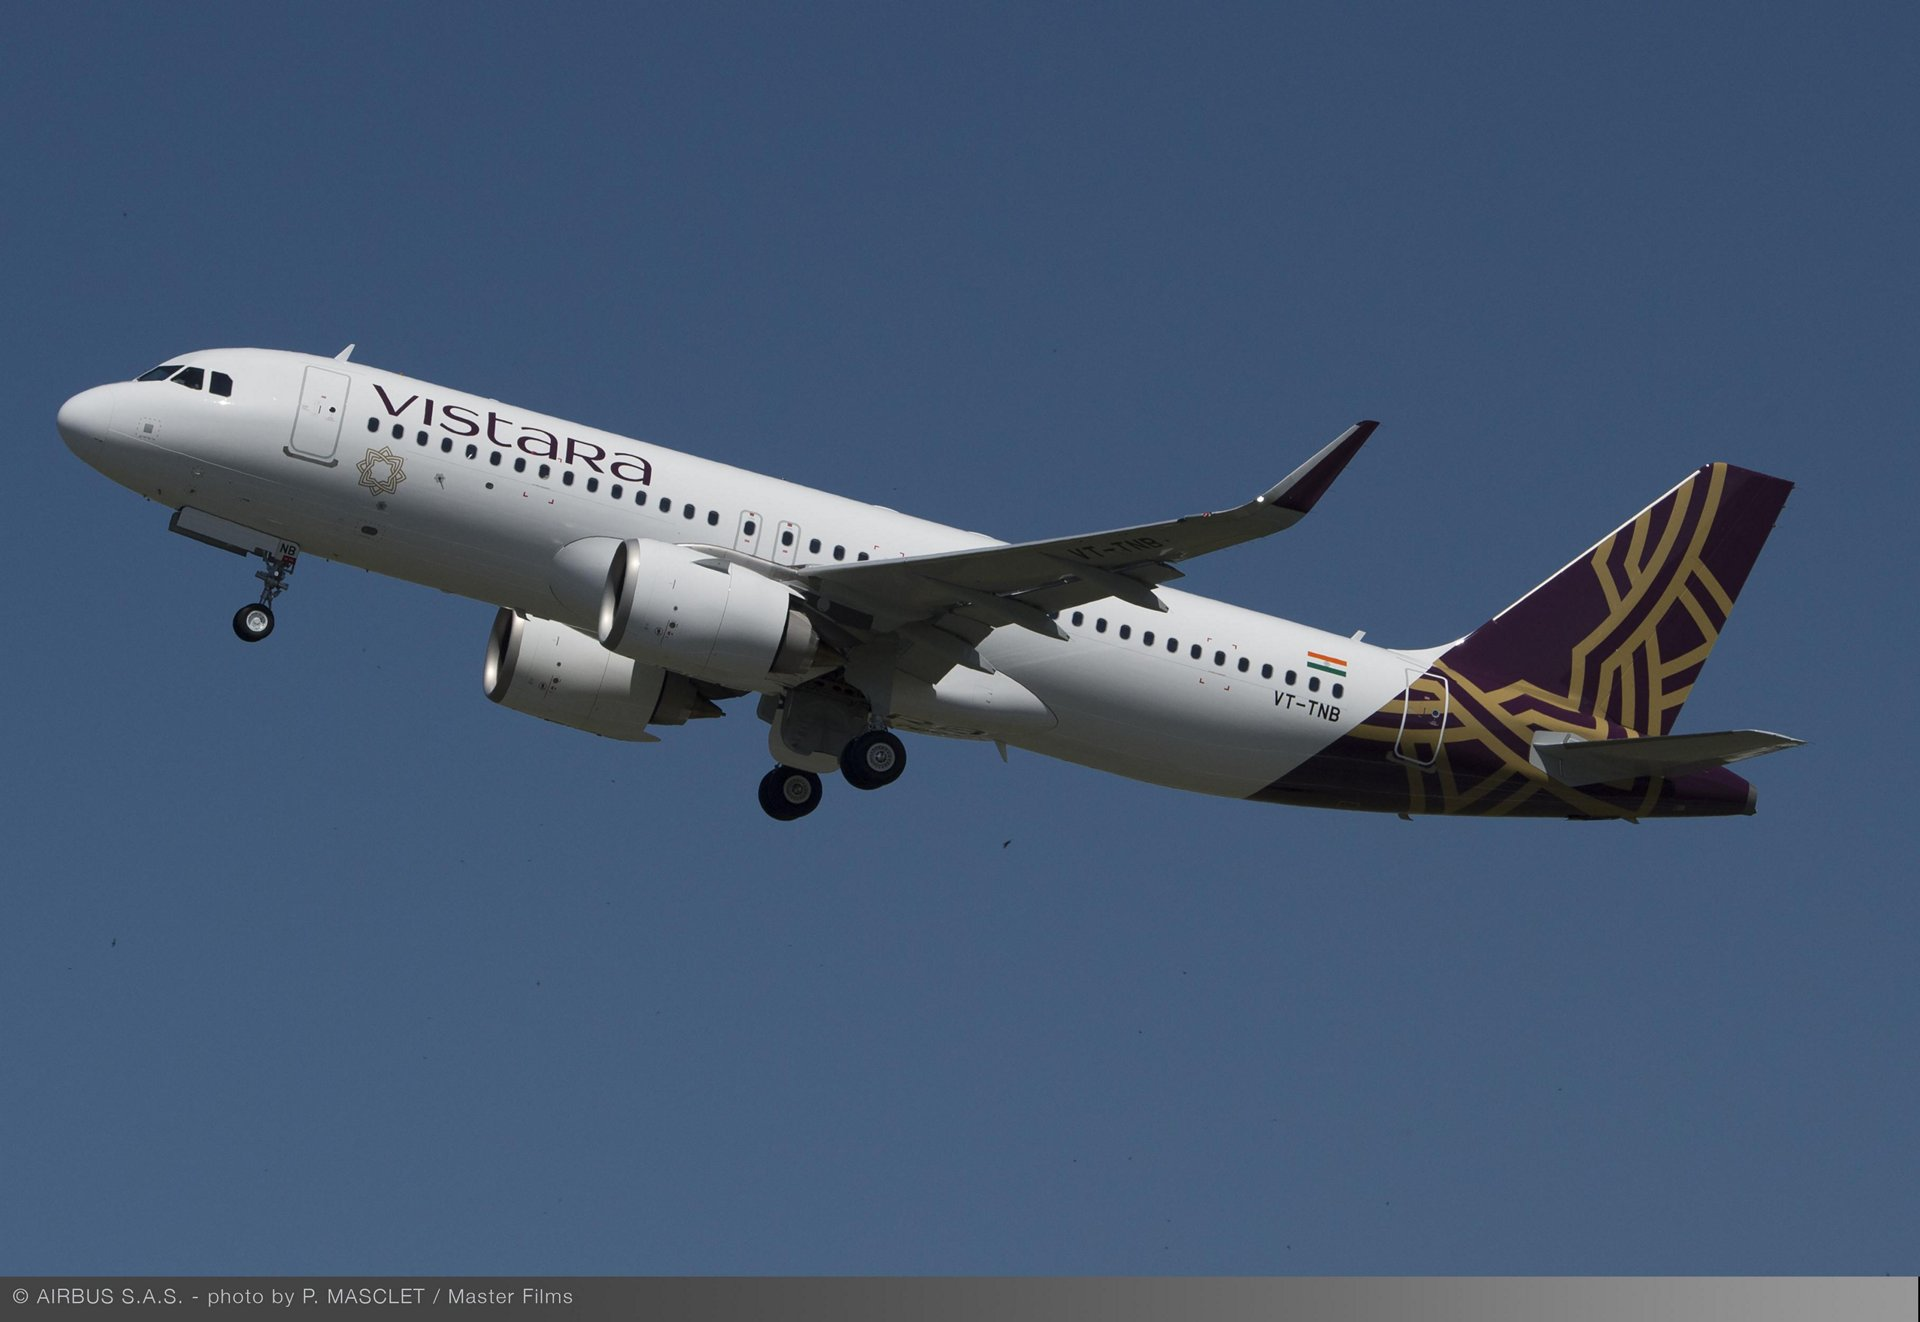 Vistara selected Airbus' FHS-TSP solution in September 2019 to maintain the operator's A320 fleet